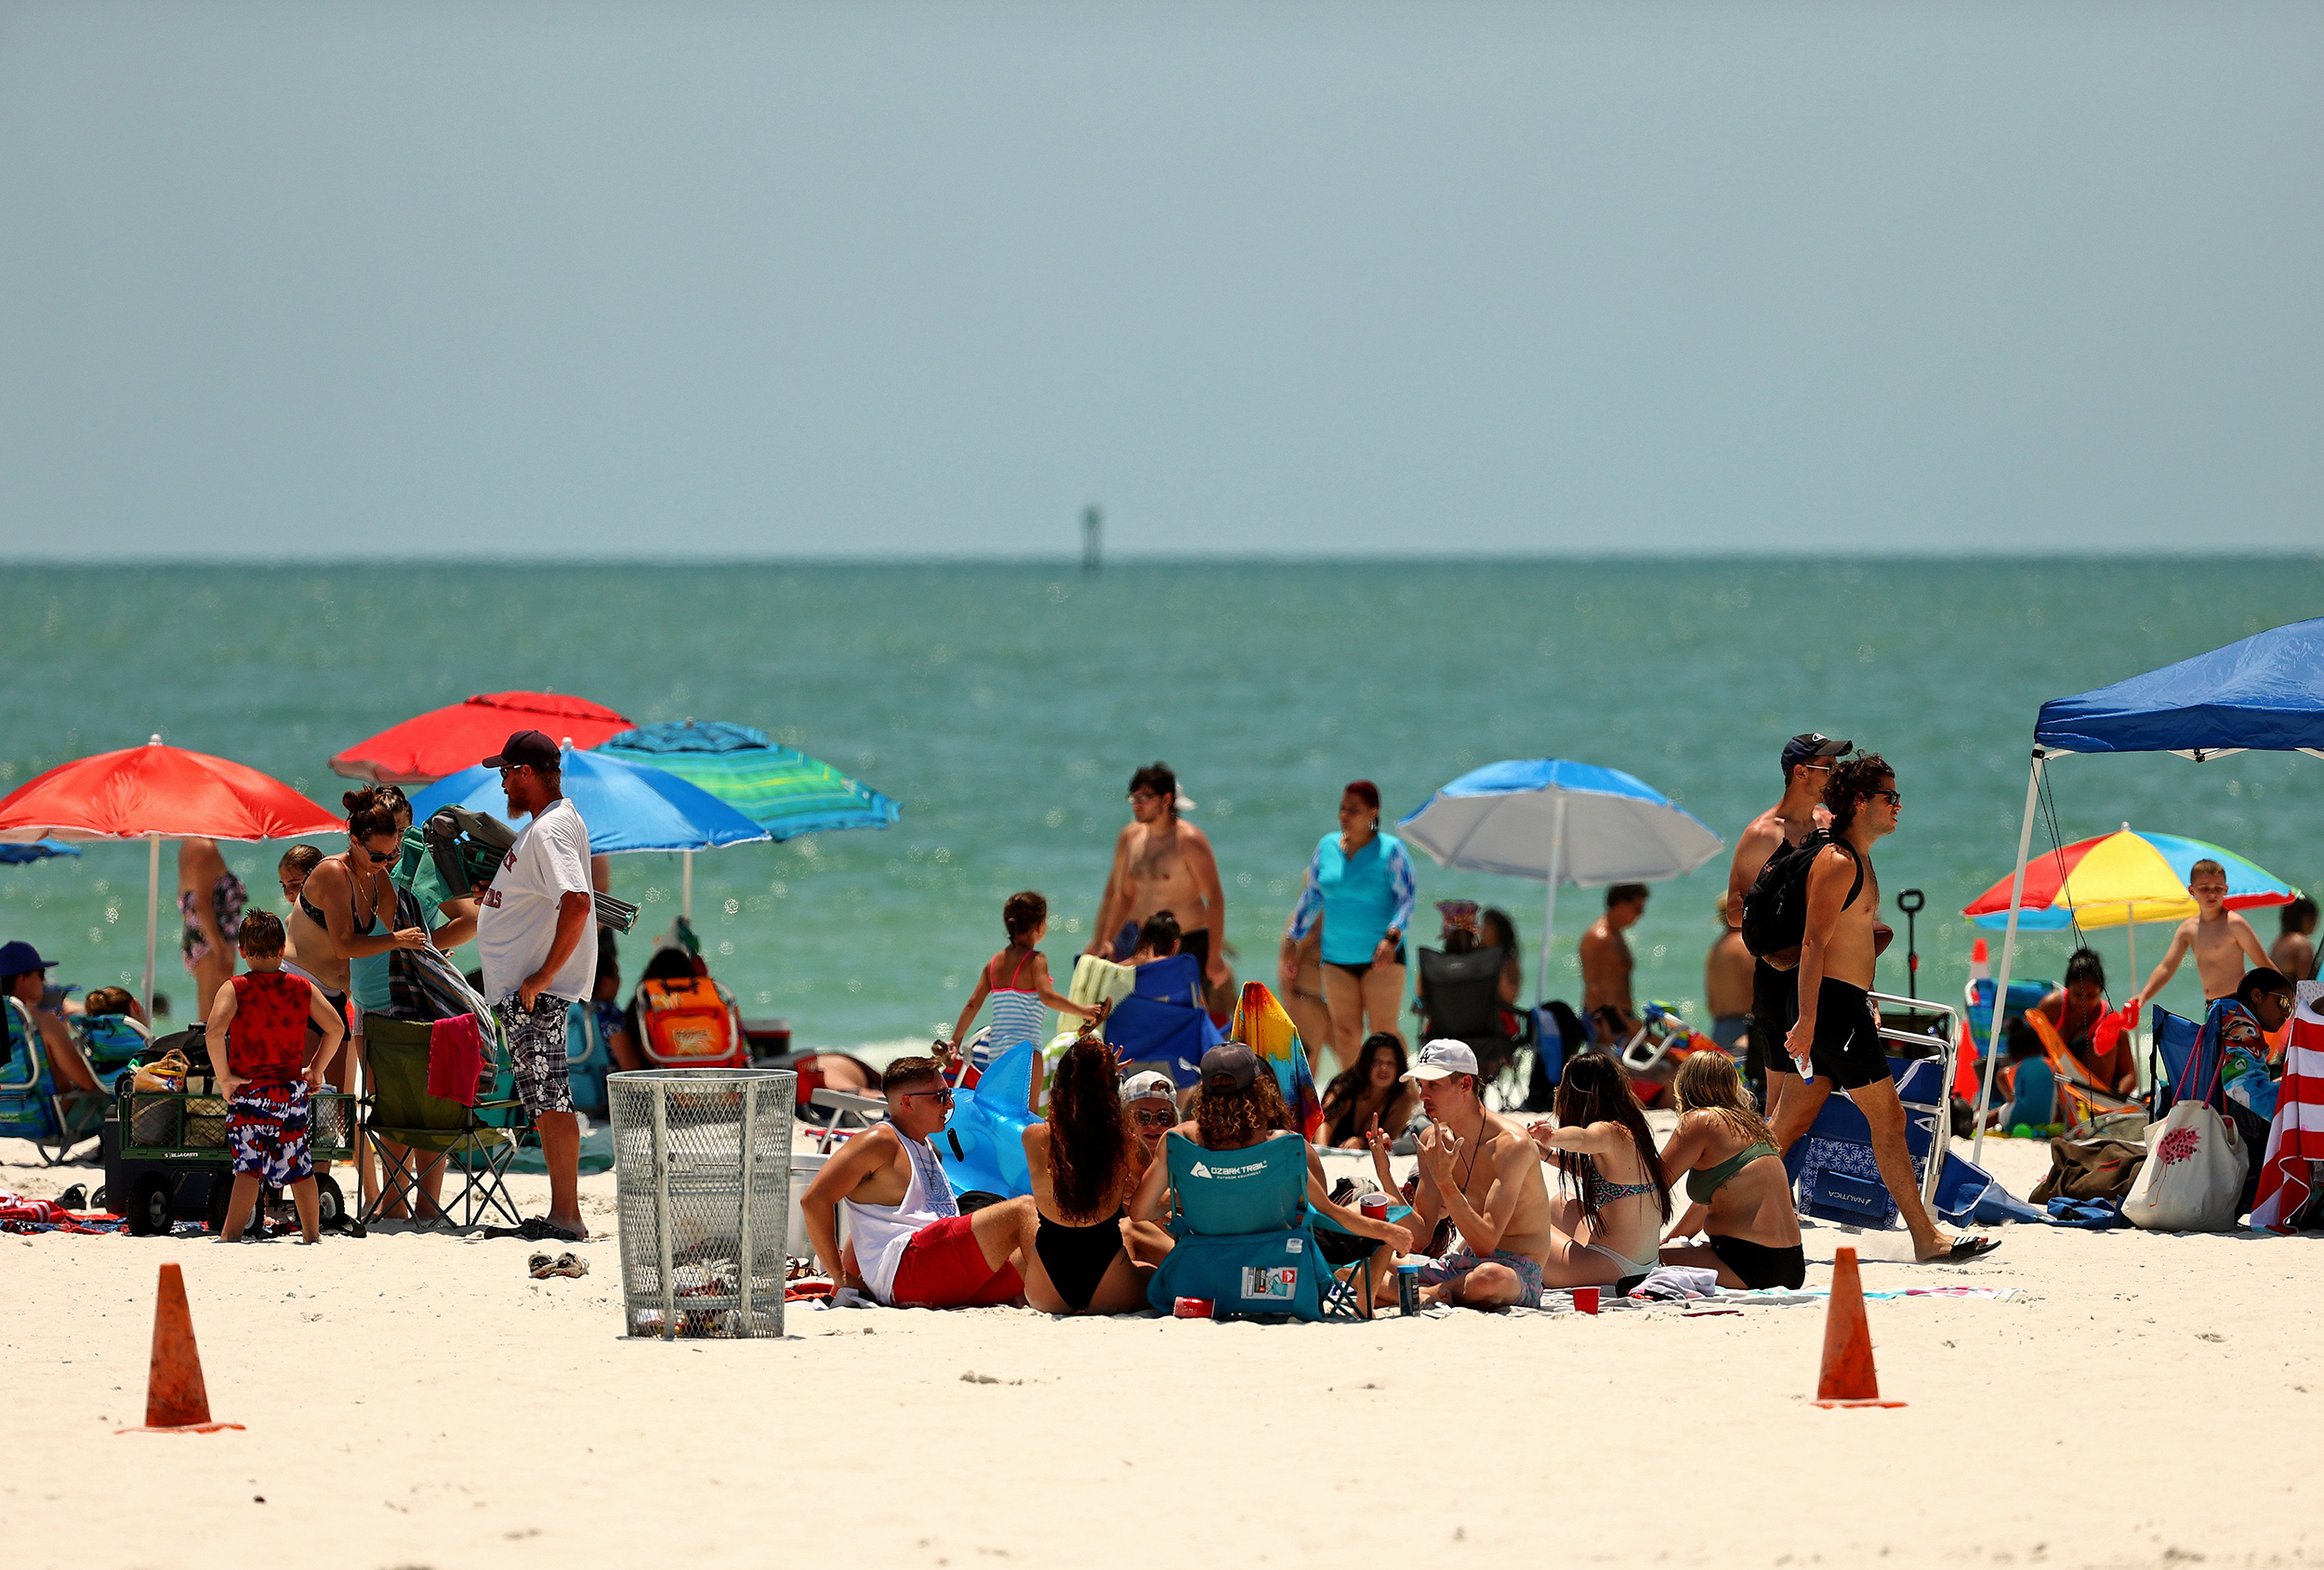 Memorial Day weekend: Americans visit beaches and attractions with pandemic warnings in mind